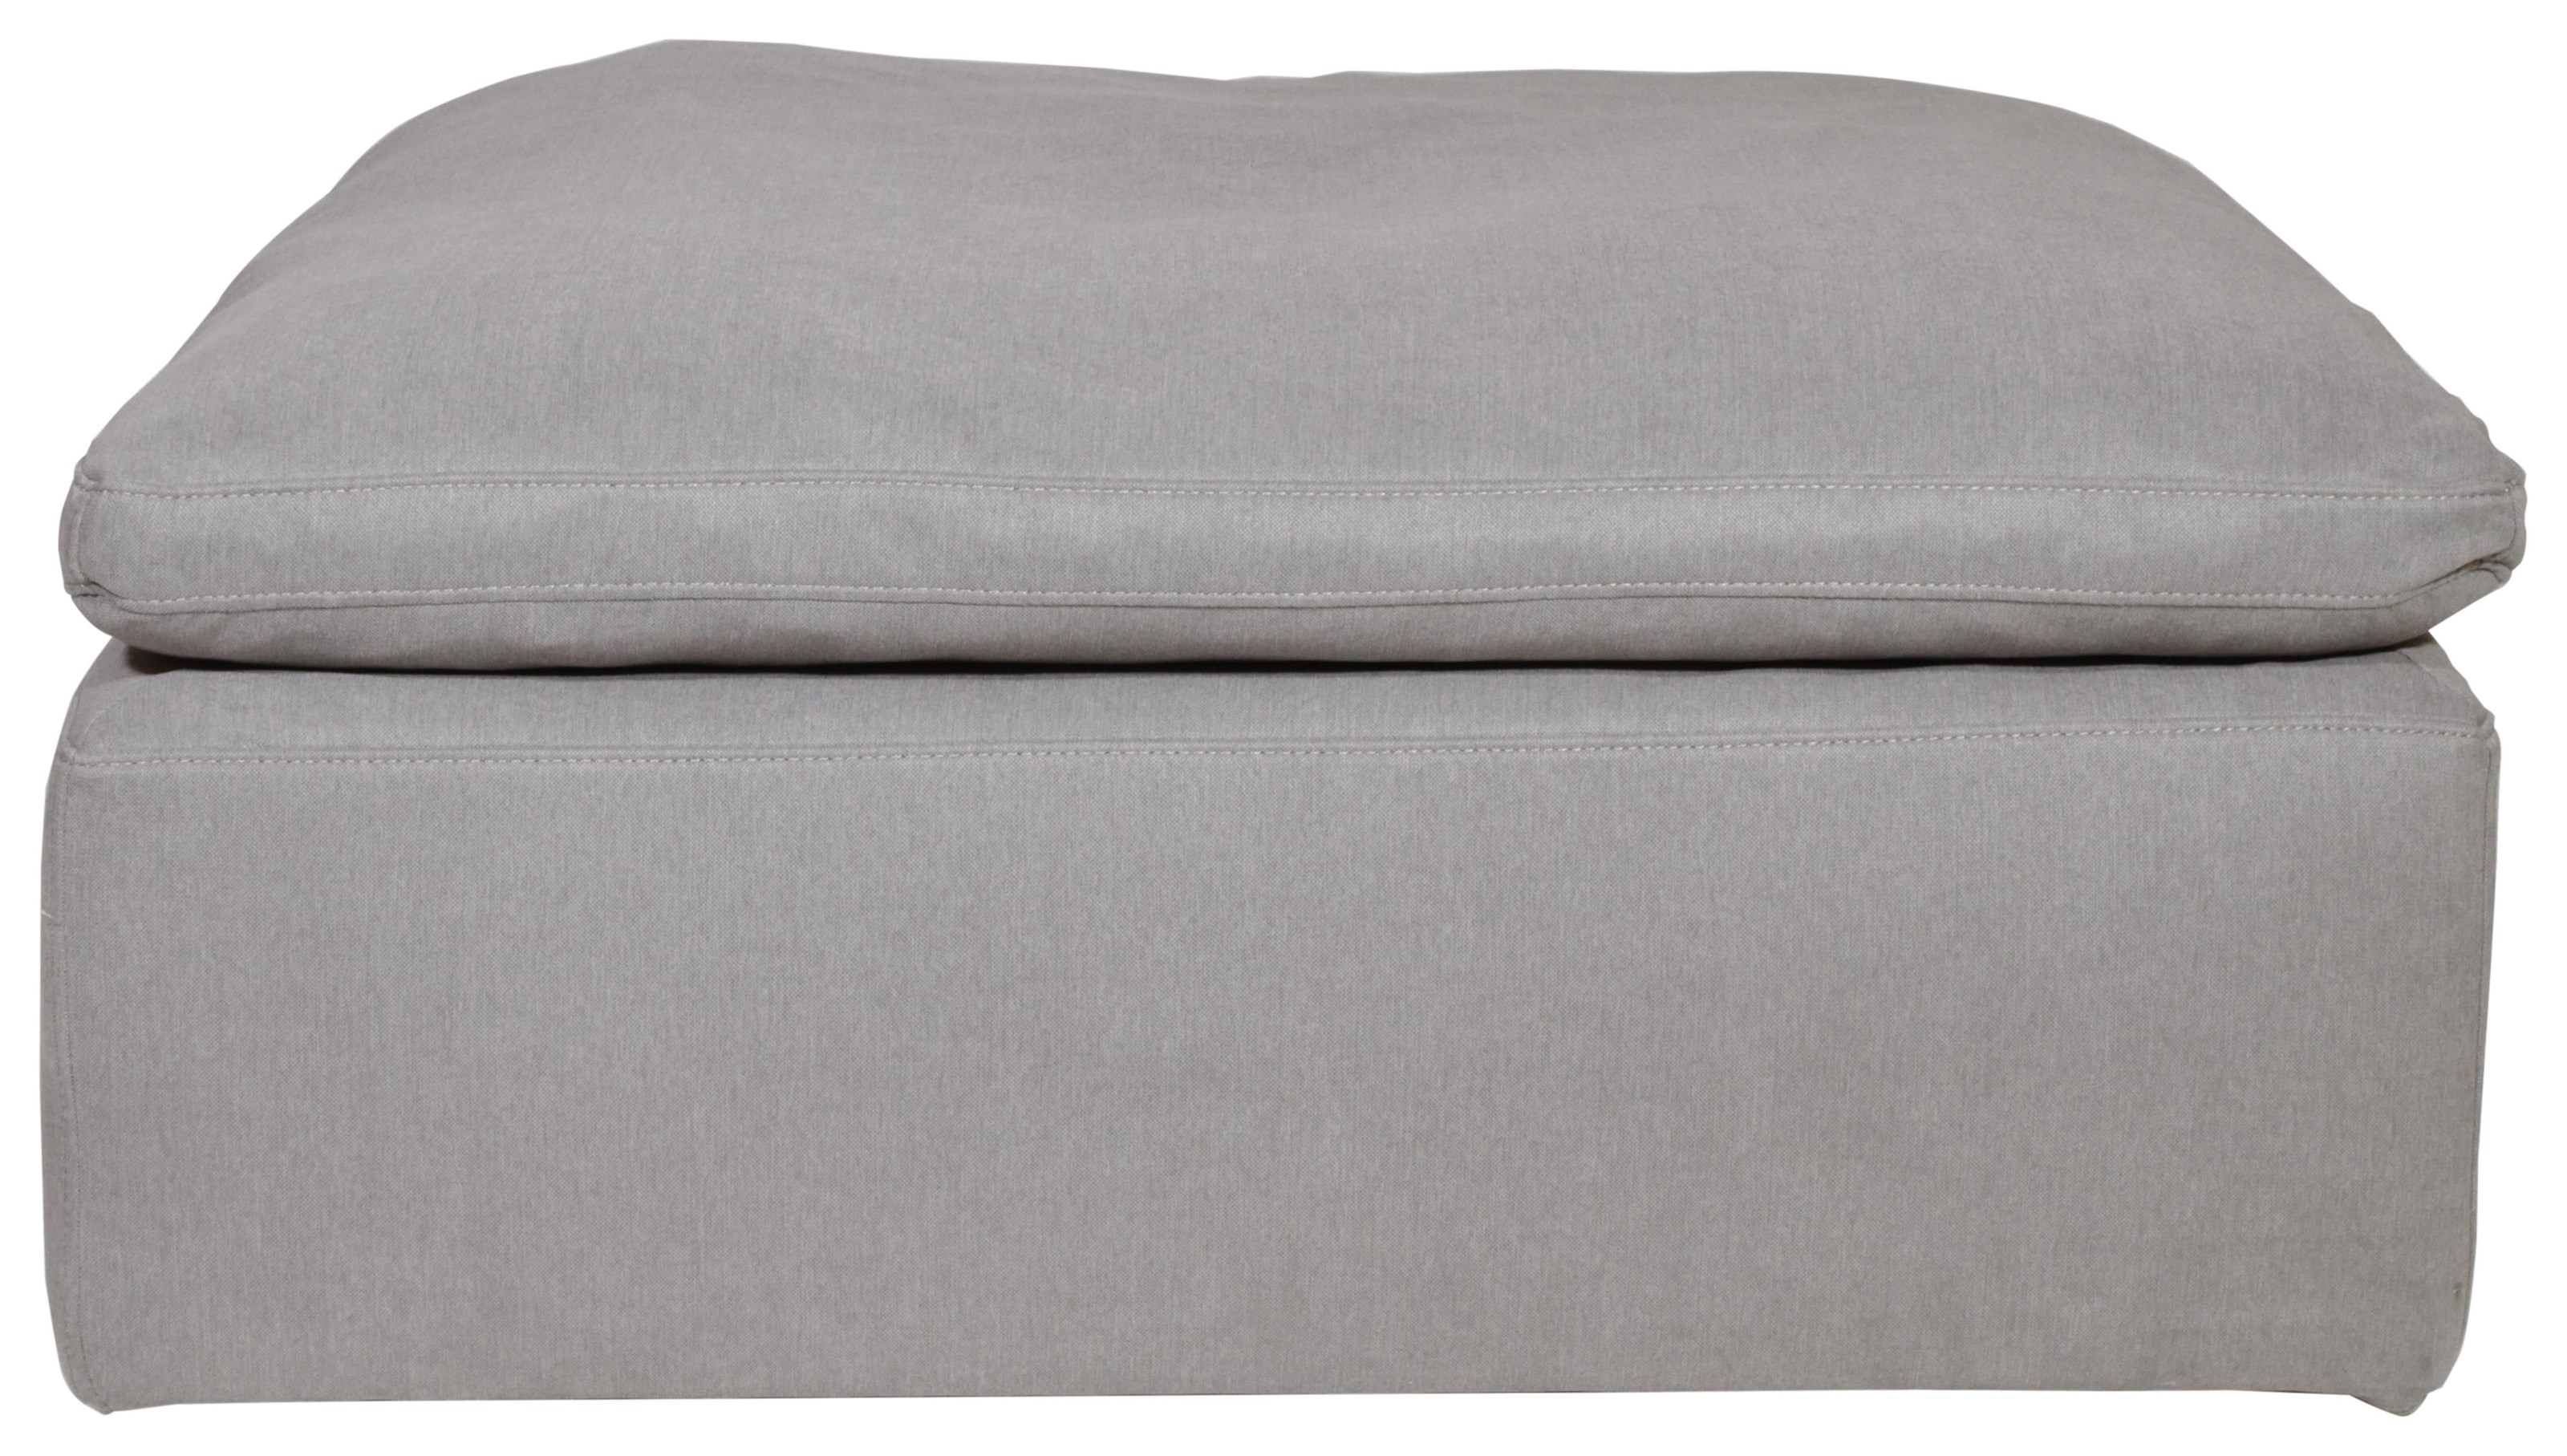 Cloud Ottoman by Synergy Home Furnishings at HomeWorld Furniture